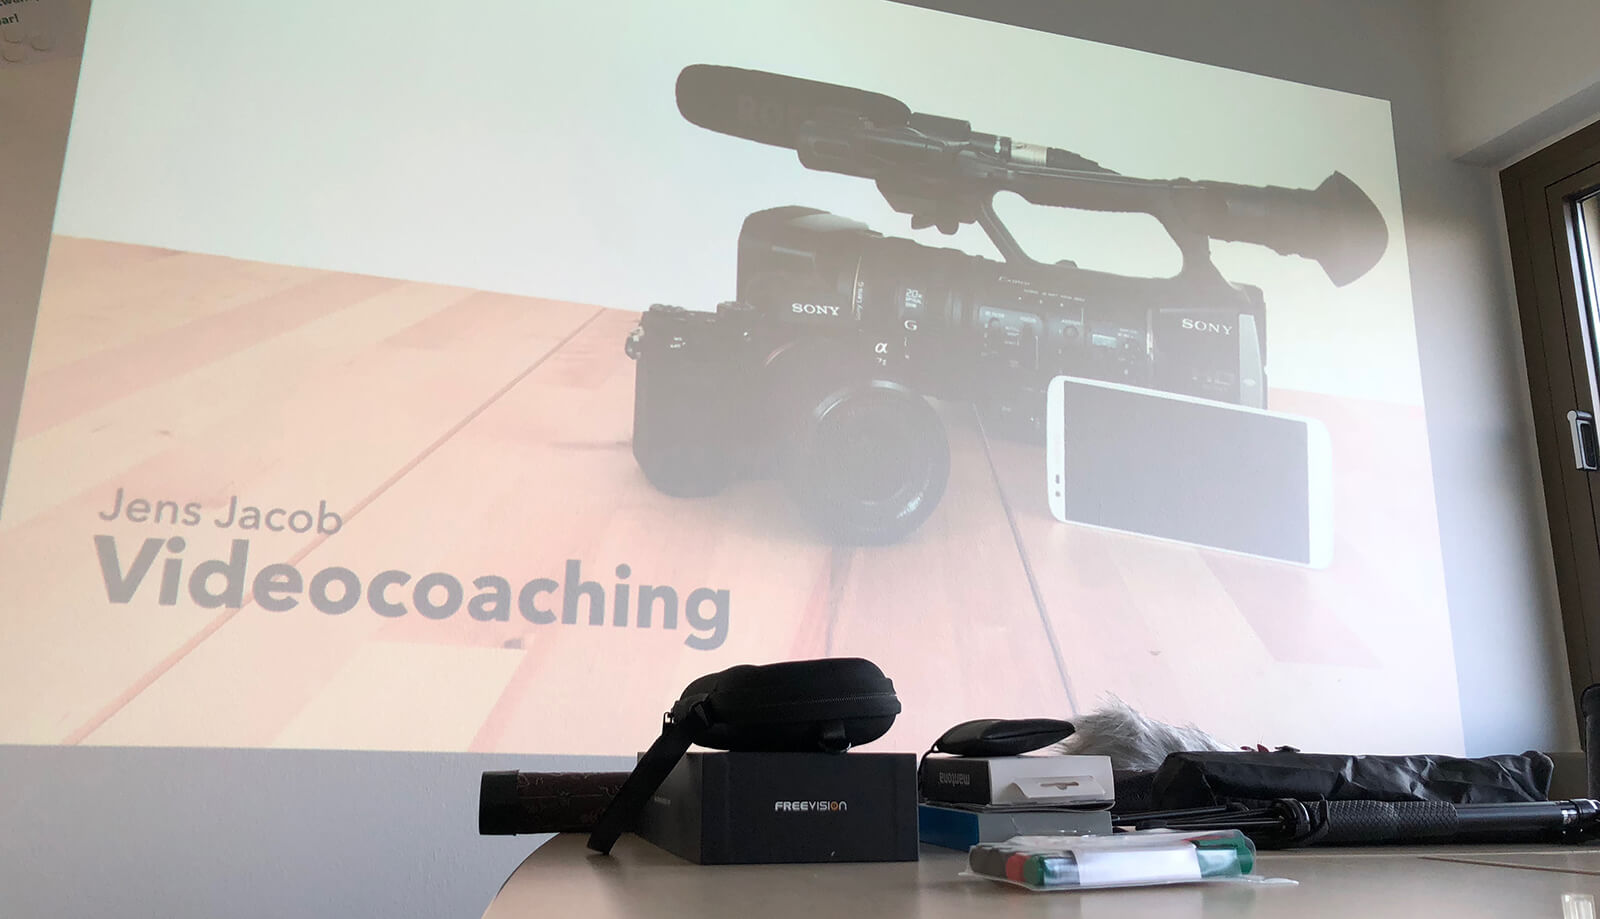 Video-Workshop mit Videocoach Jens Jacob